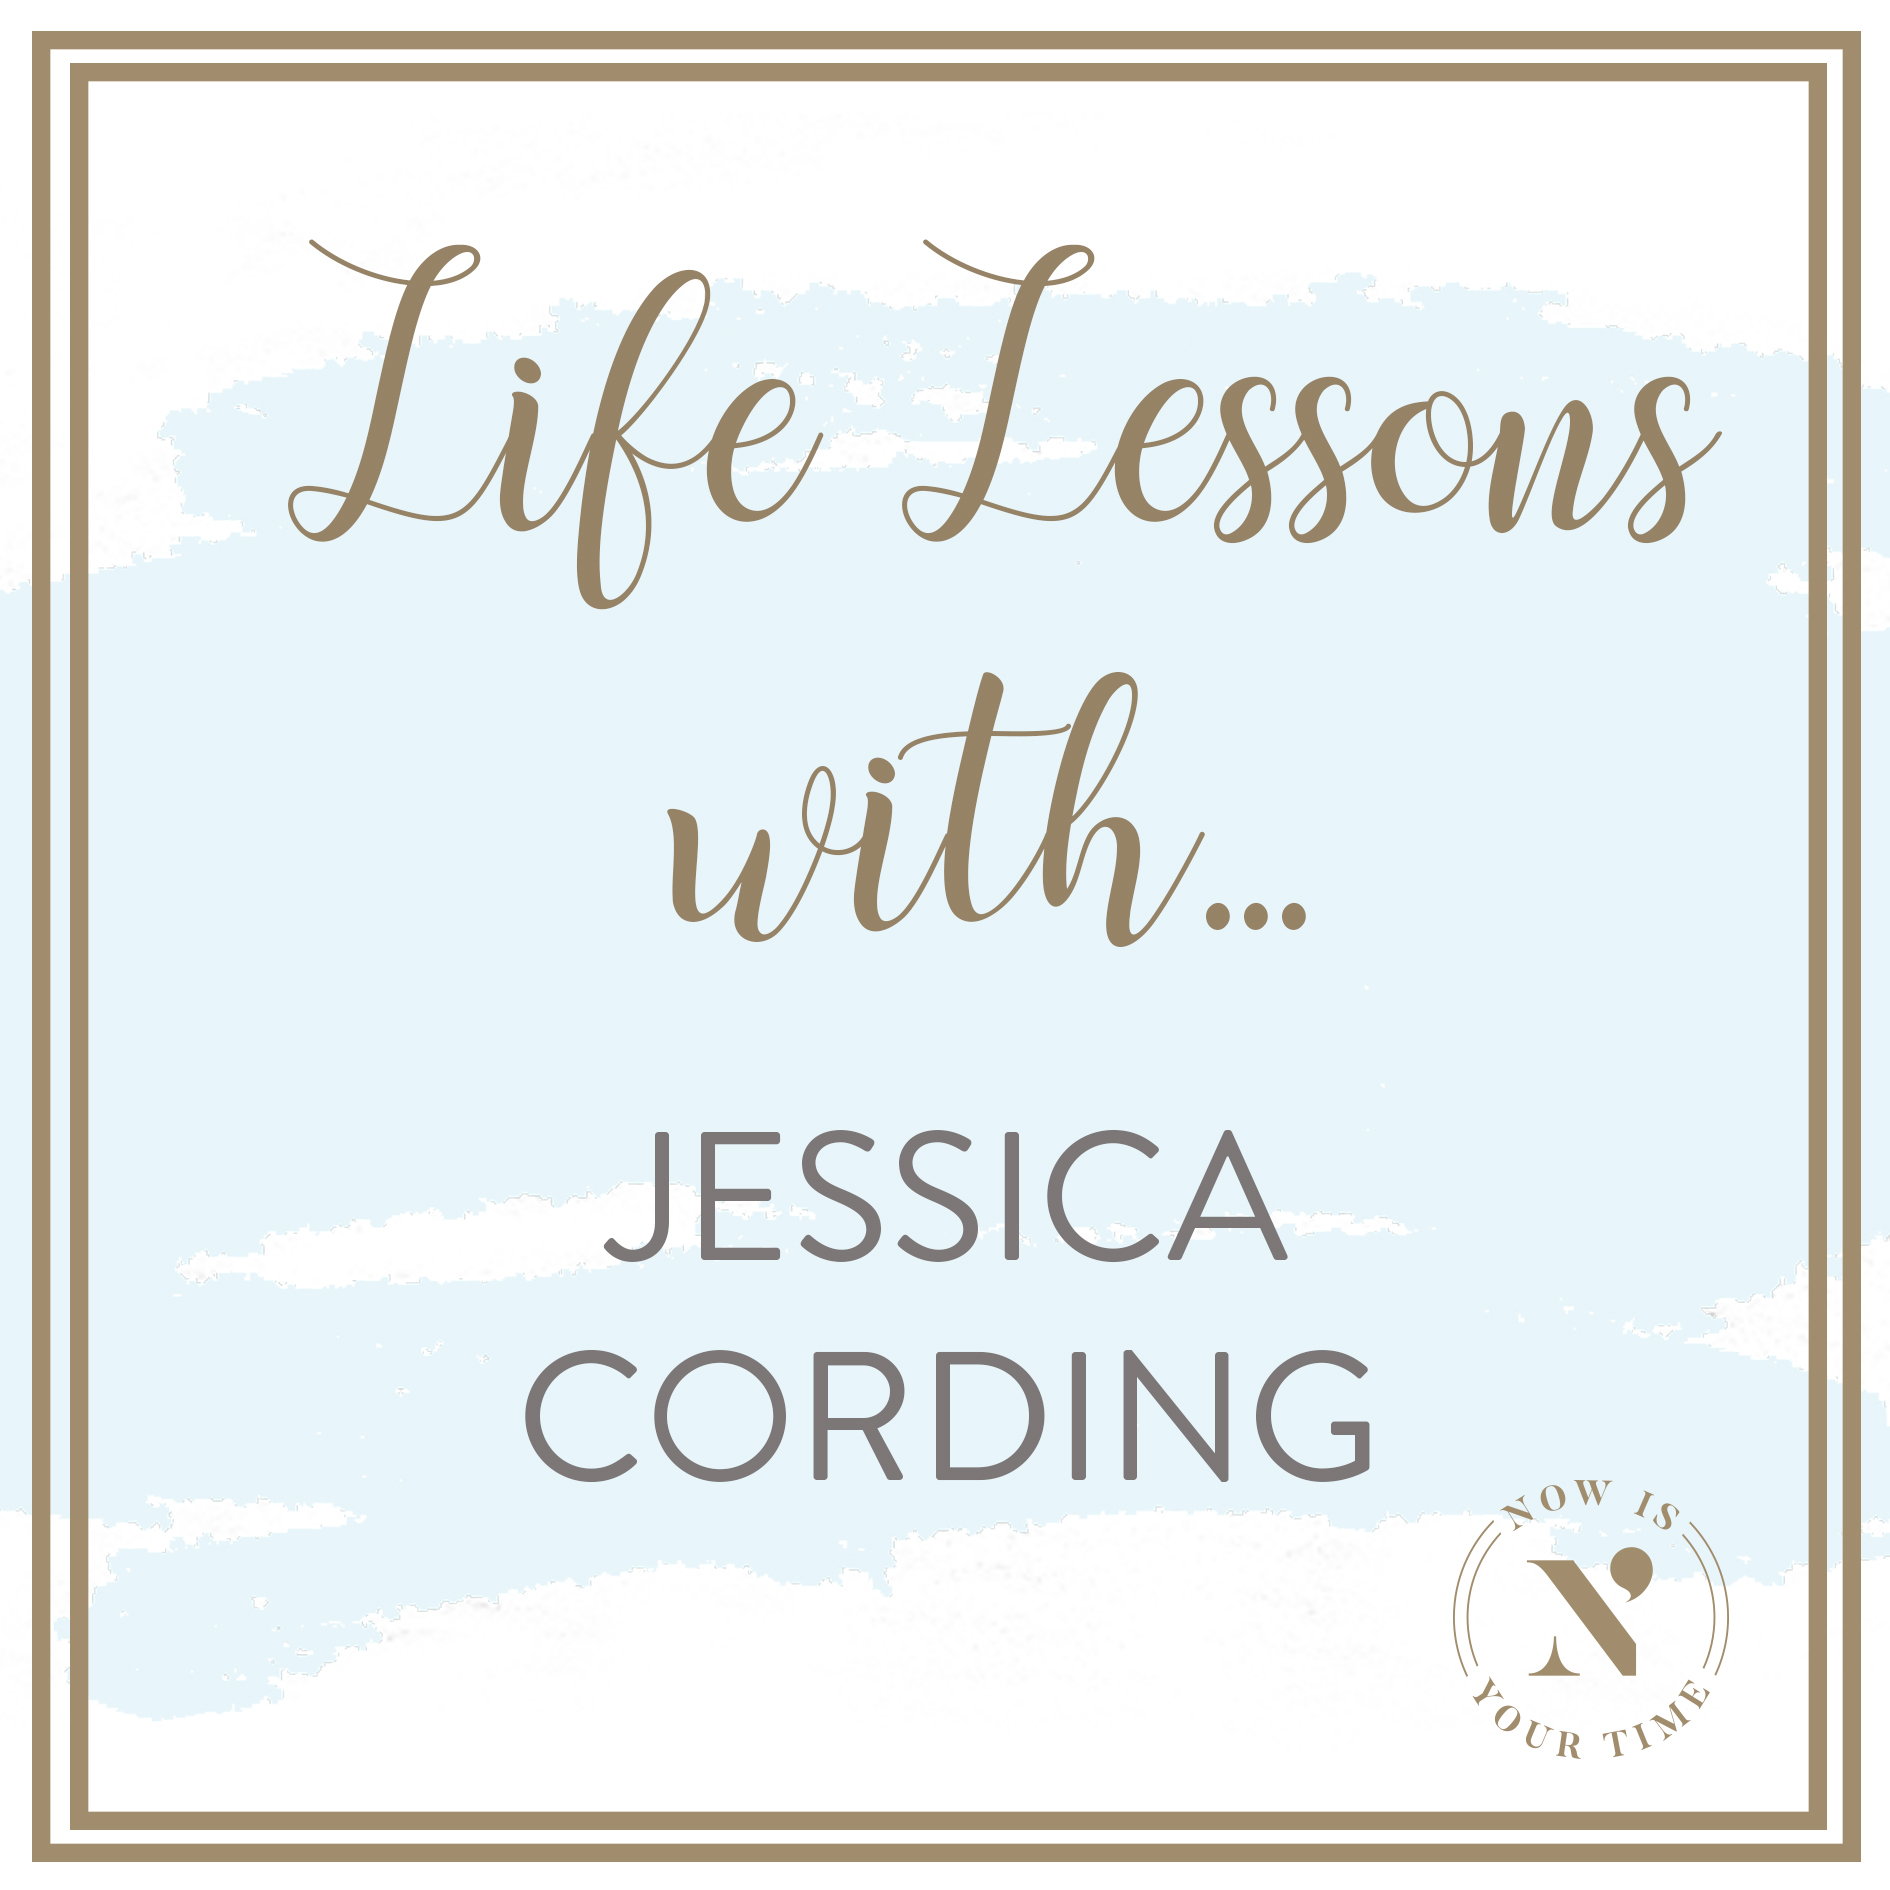 Life Lessons with podcast artwork - Jessica Cording.jpg